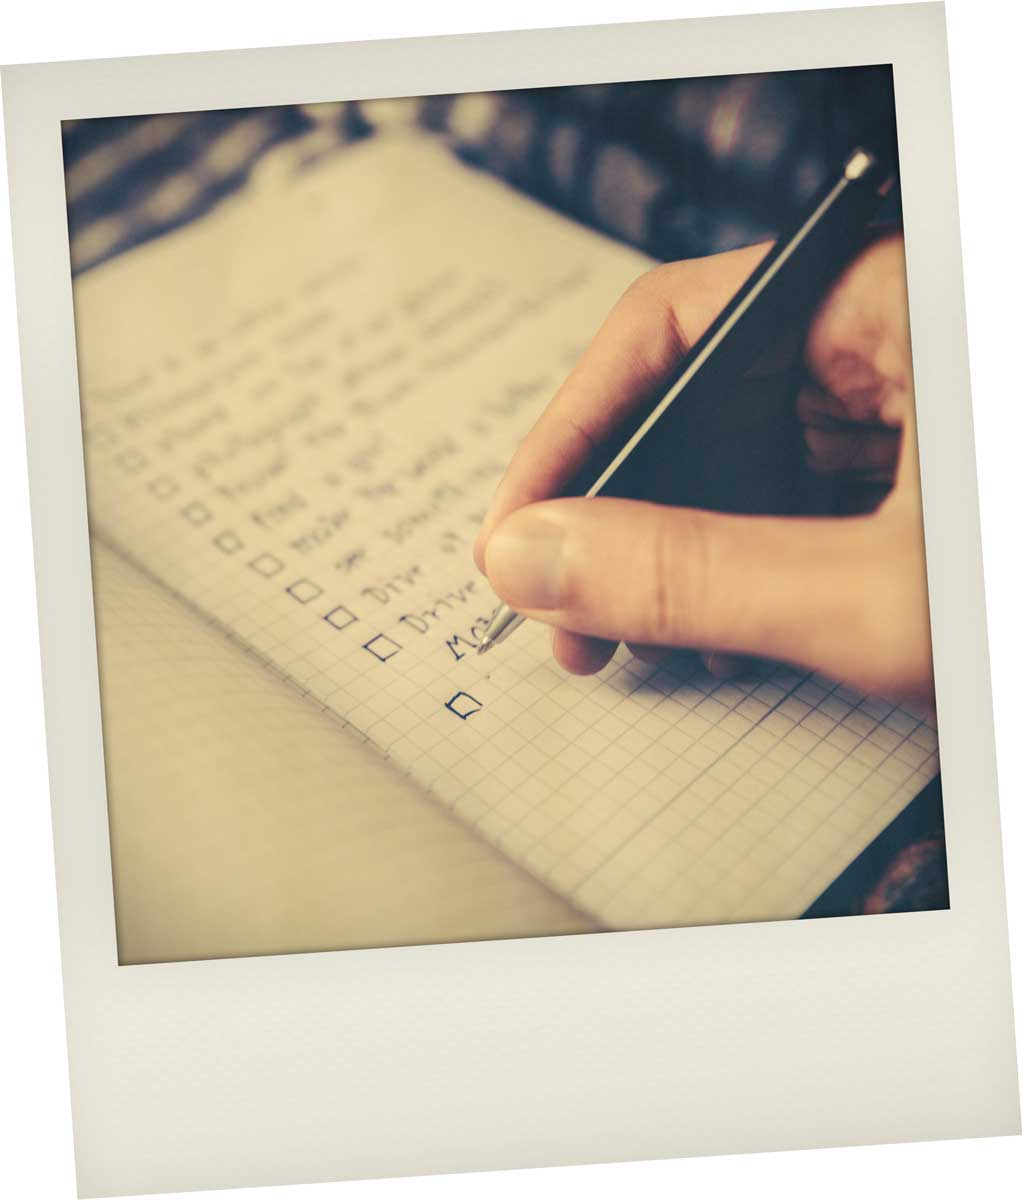 Hand holding a pen and writing on note paper